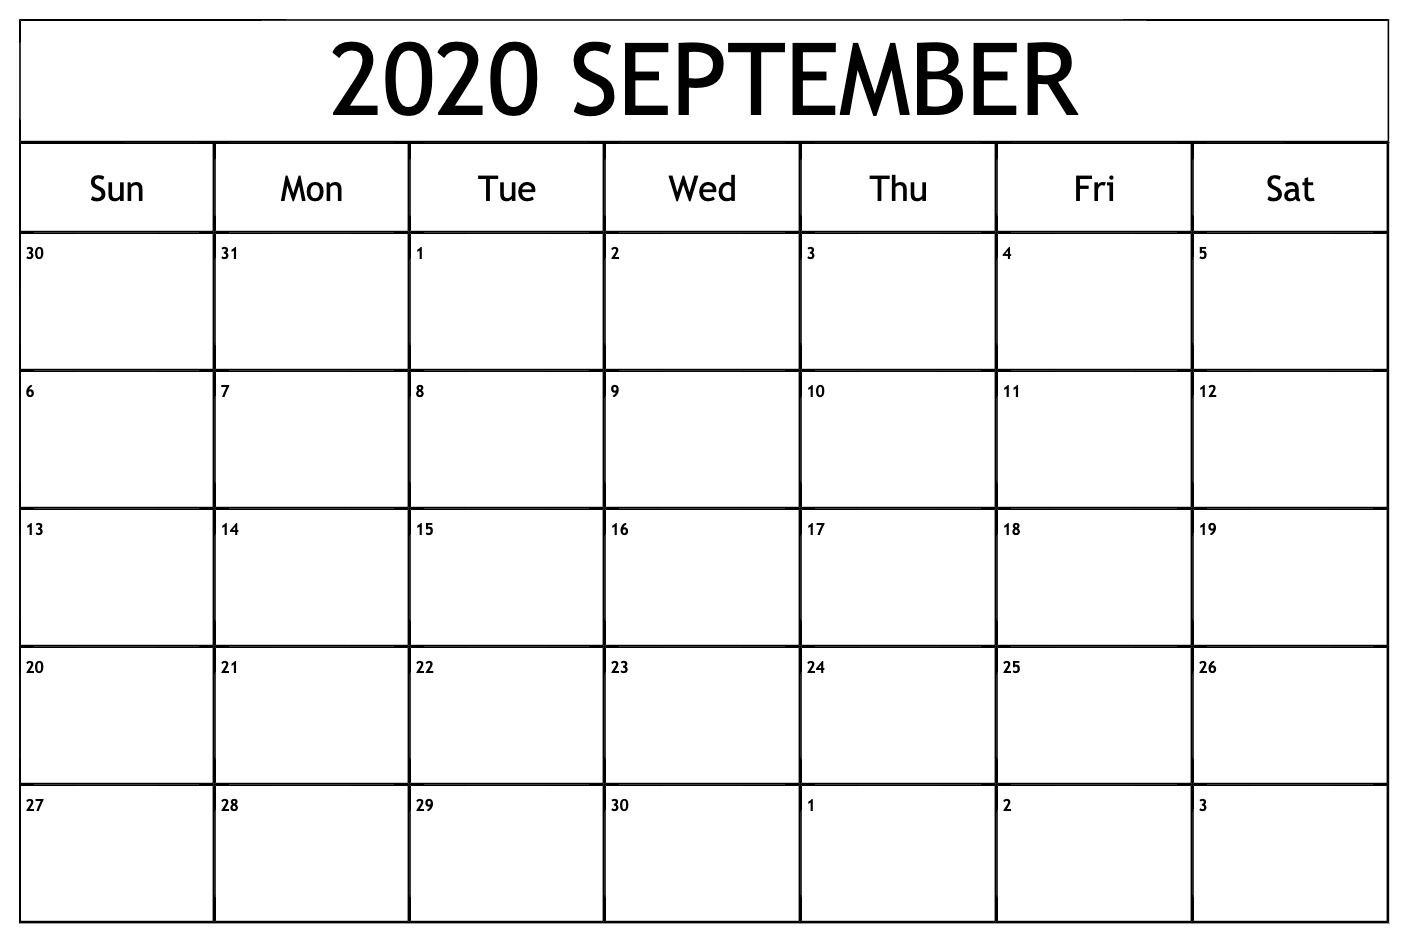 September 2020 Calendar Pdf | September Calendar, Monthly